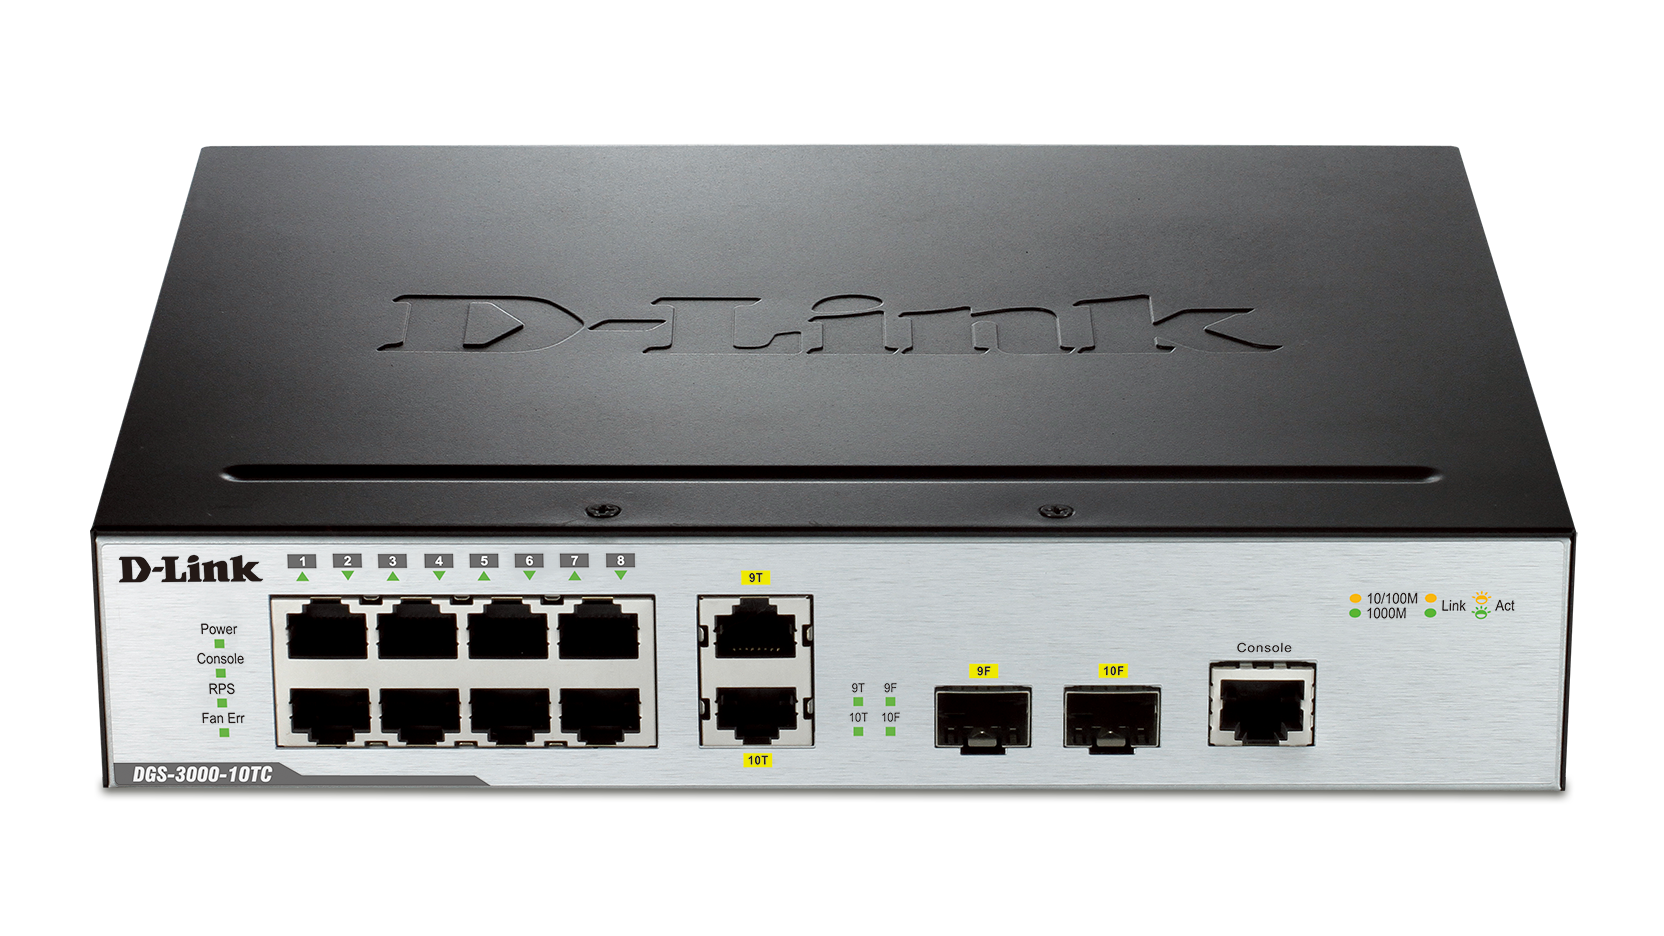 10 Port Gigabit L2 Managed Switch Including 2 Gigabit